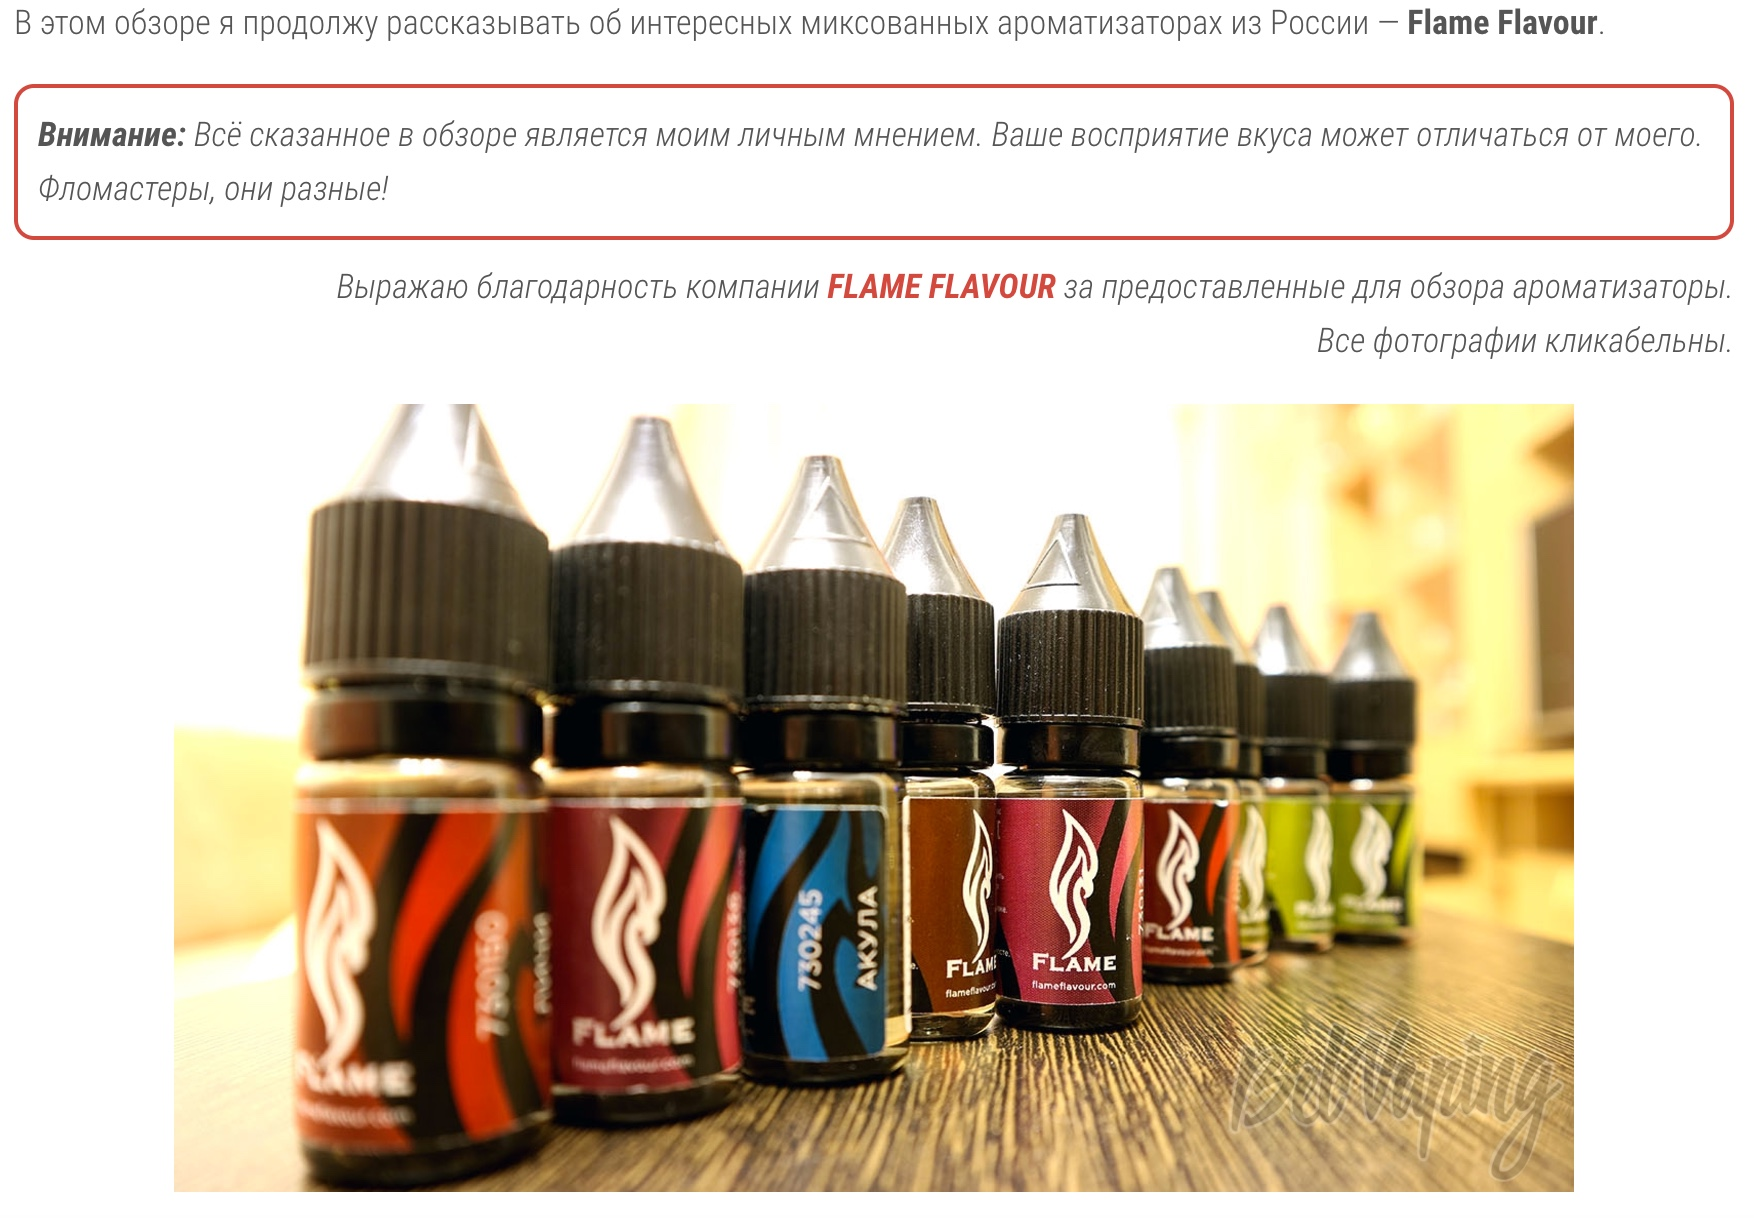 BelVaping obzor Flame 2 1